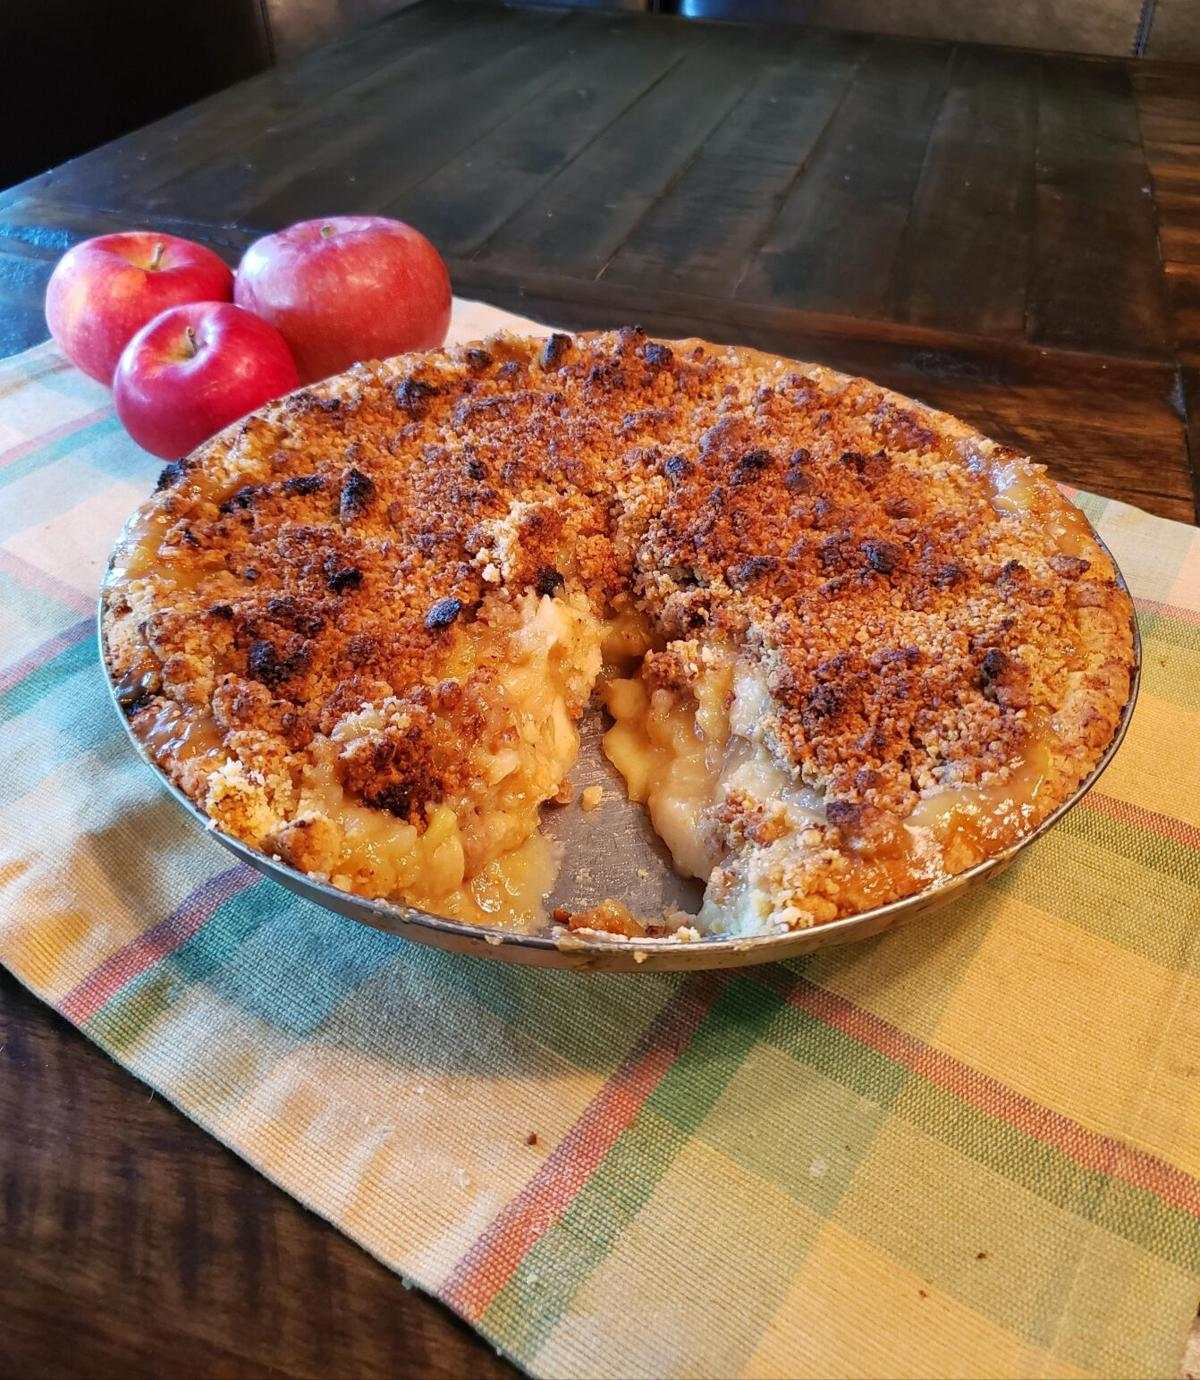 Applescotch Pie